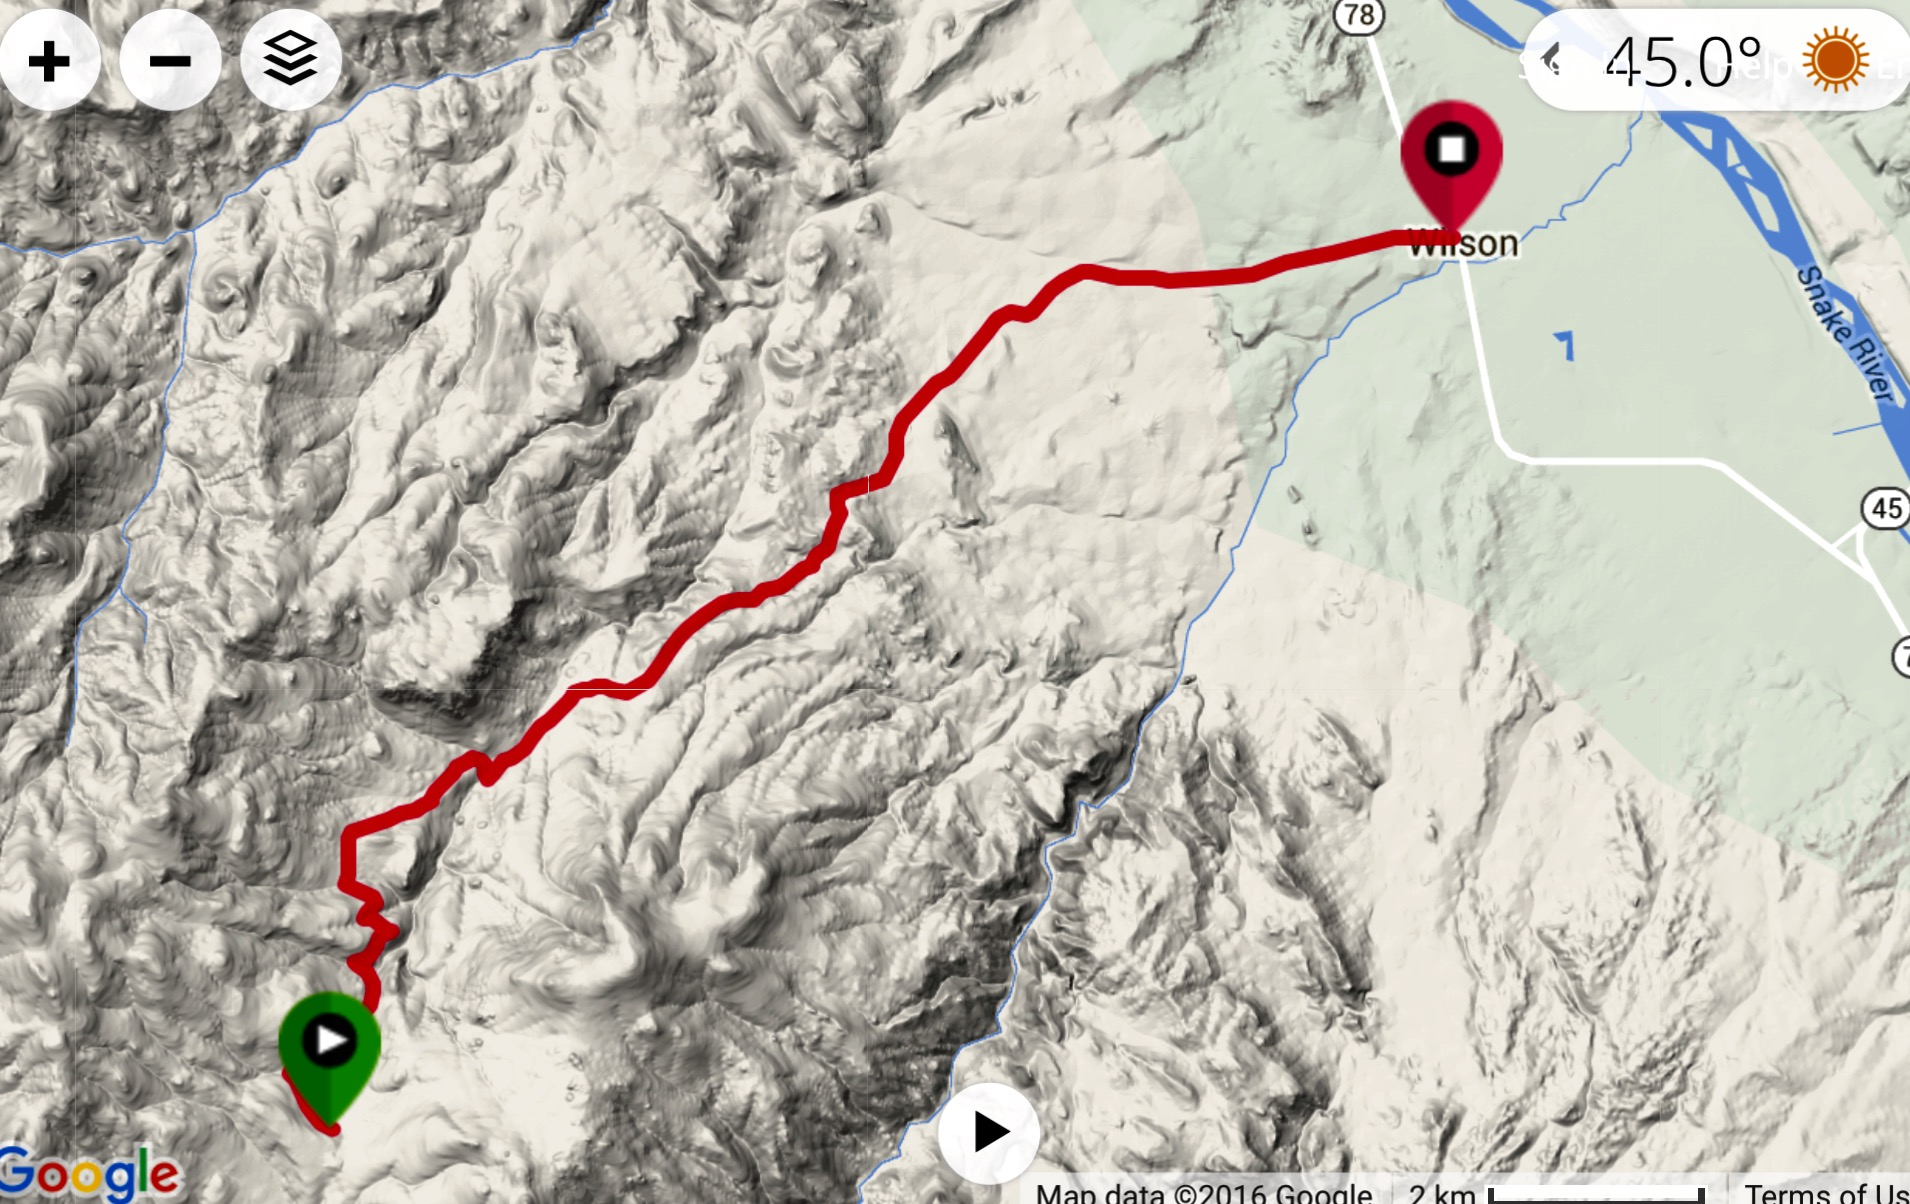 This GPS track shows the Wilson Creek Road to the pount it reaches the Wilson Peak Road.